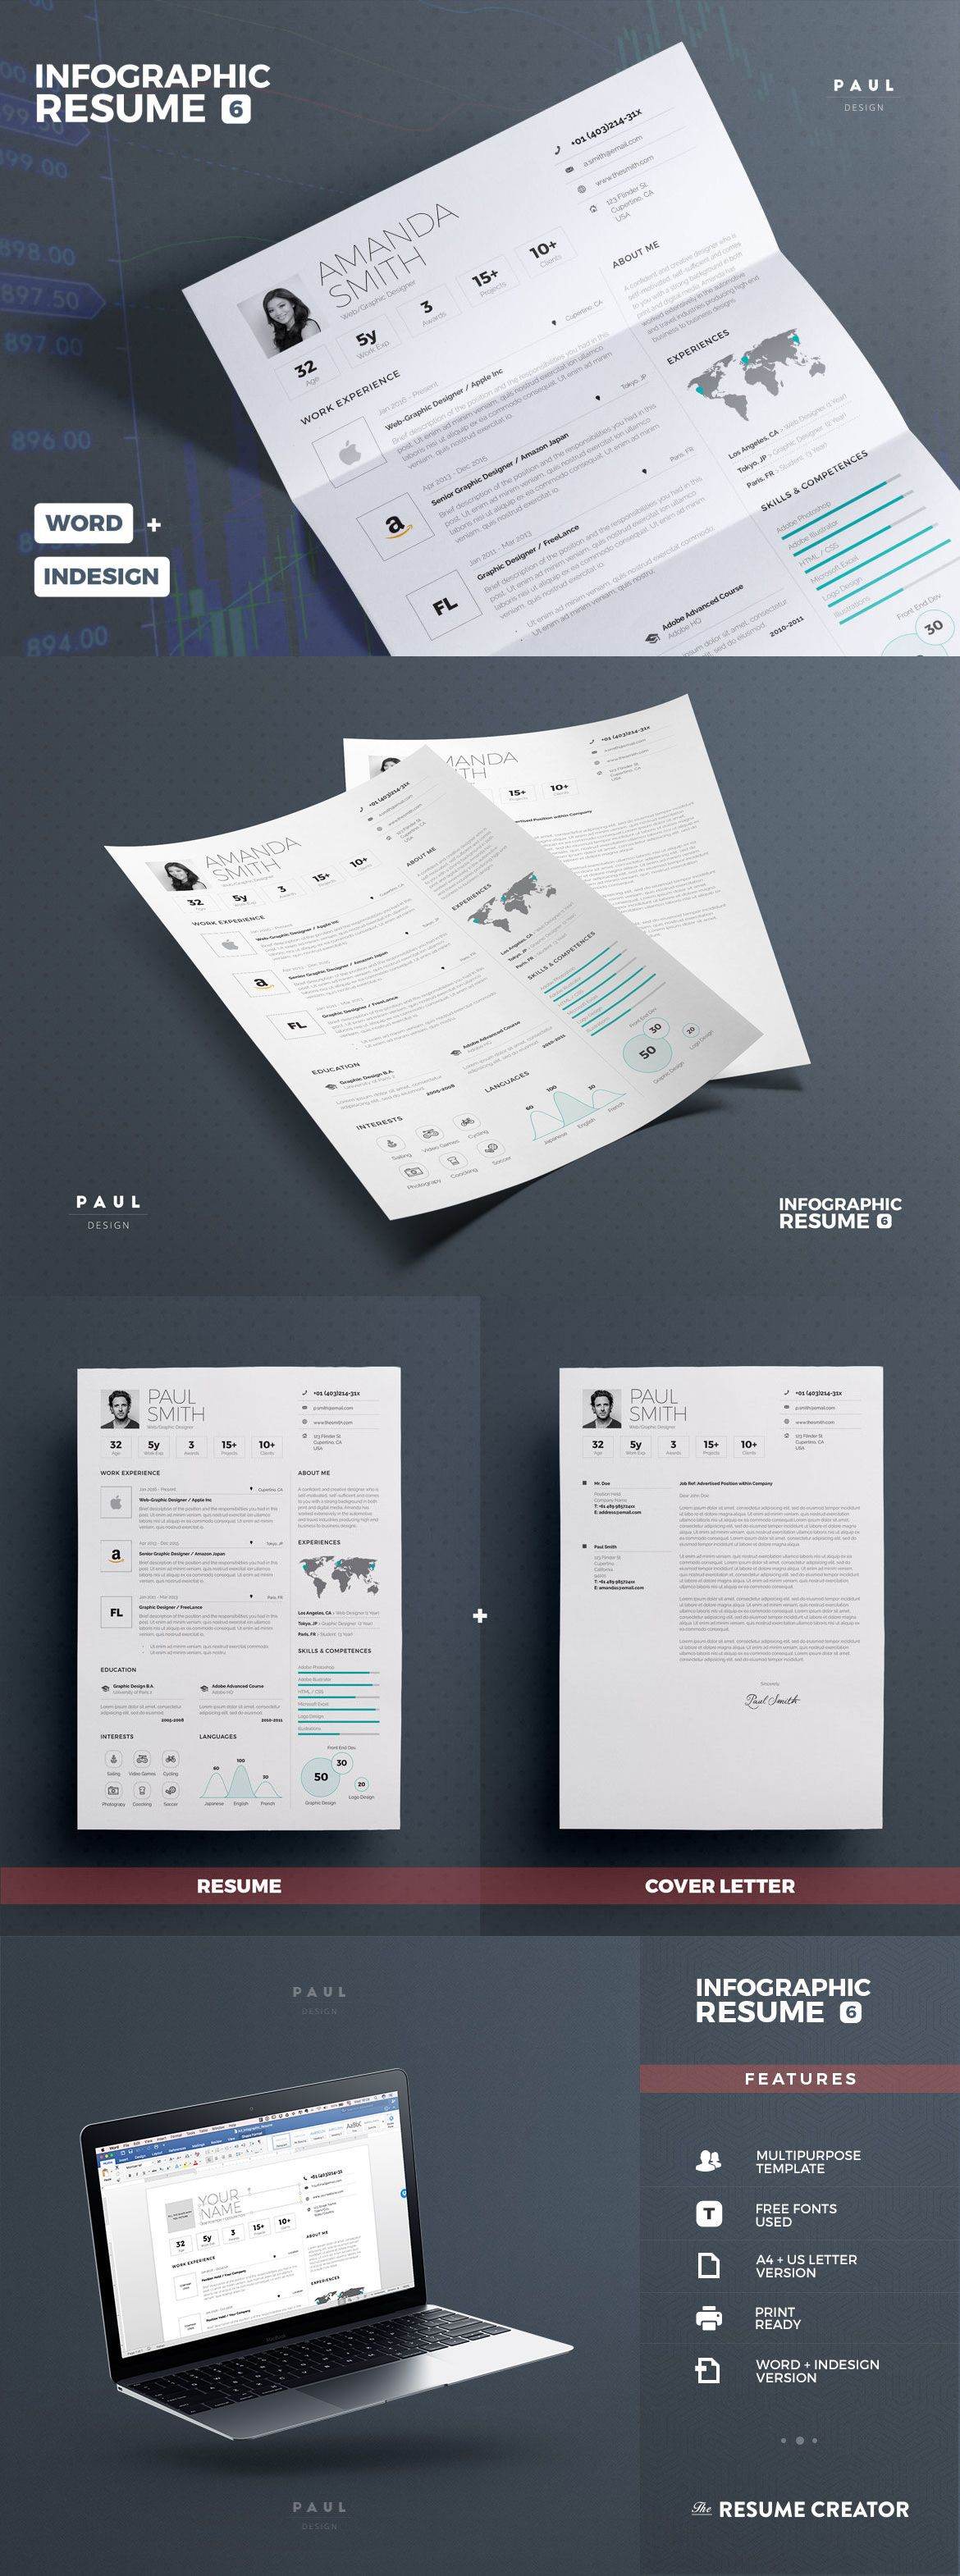 Infographic Resume  Cv Template Indesign Indd Ms Word  Resume